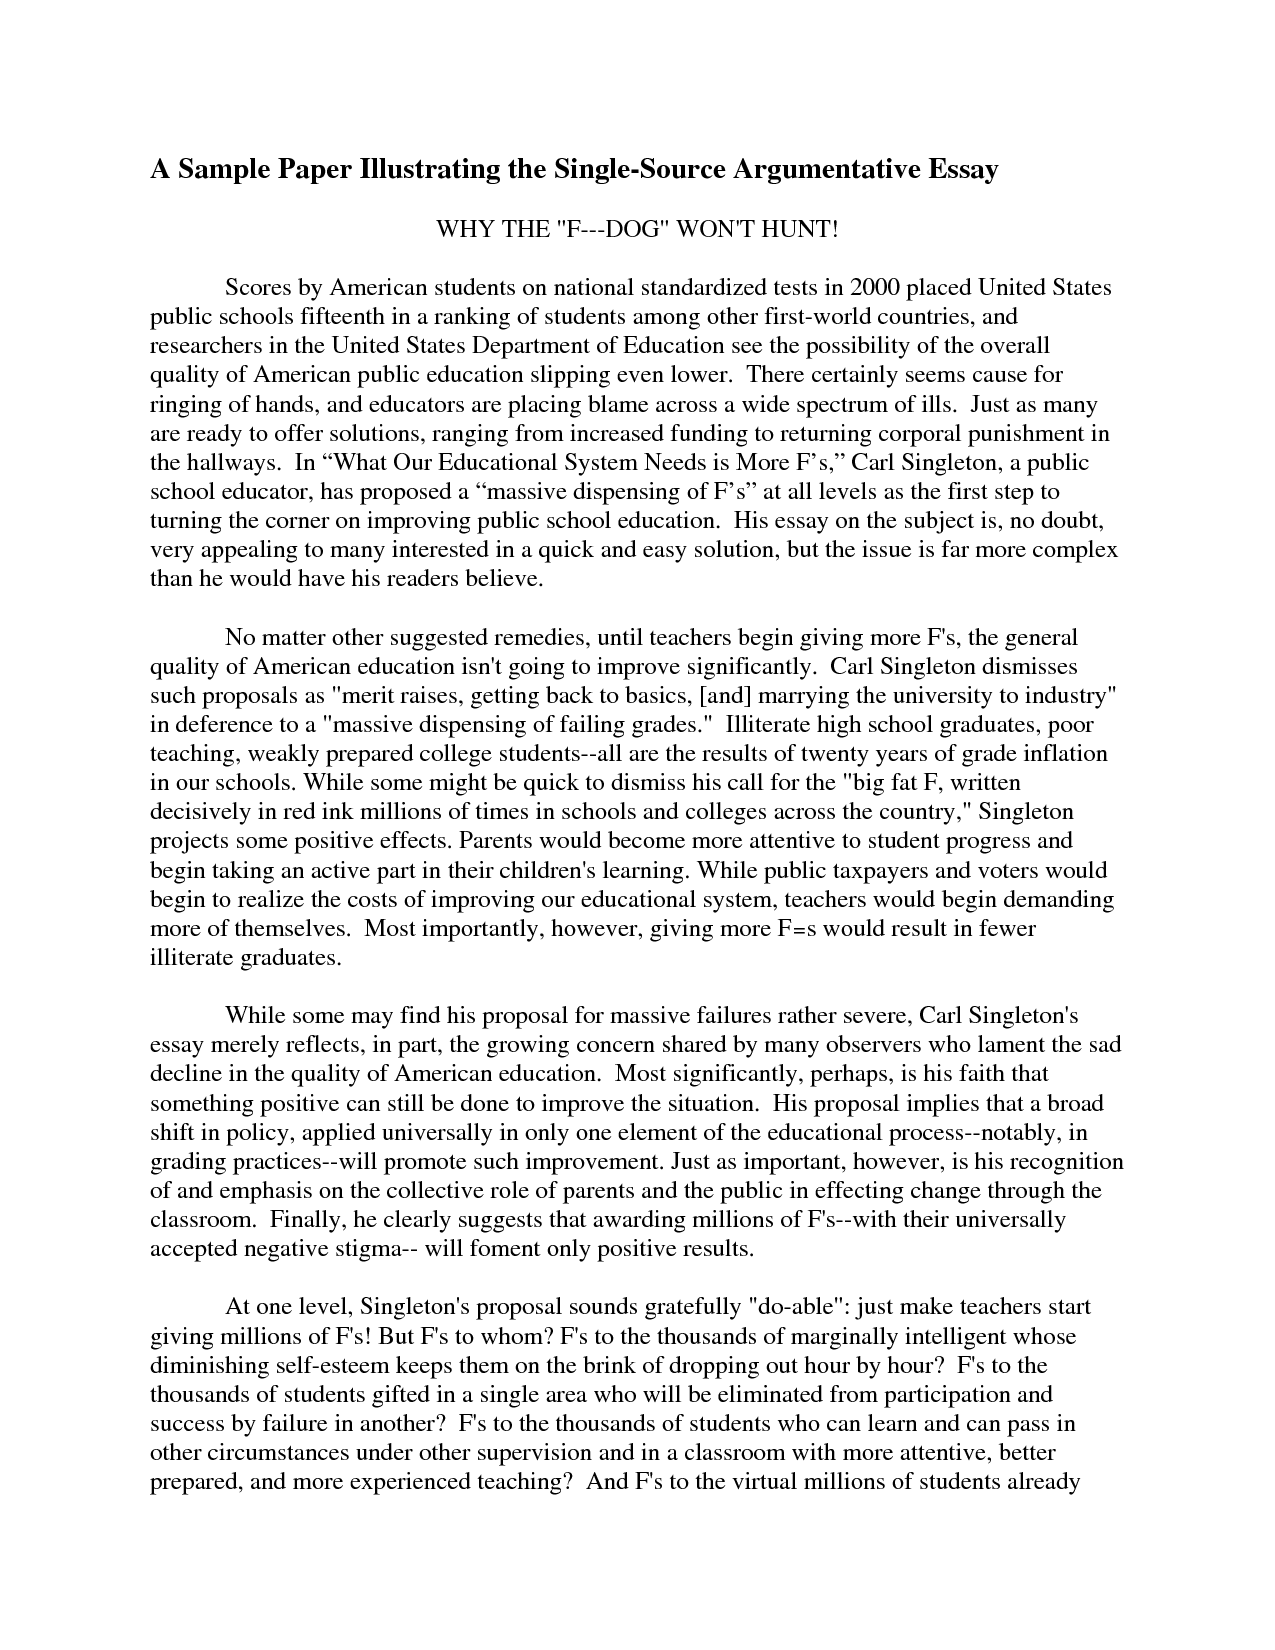 015 Essay Example How To Conclude An Argumentative Persuasive Examples Ideas Of Writing Essays With Additional Top Teach Write A Closing Paragraph For Step By Ppt Middle School Full